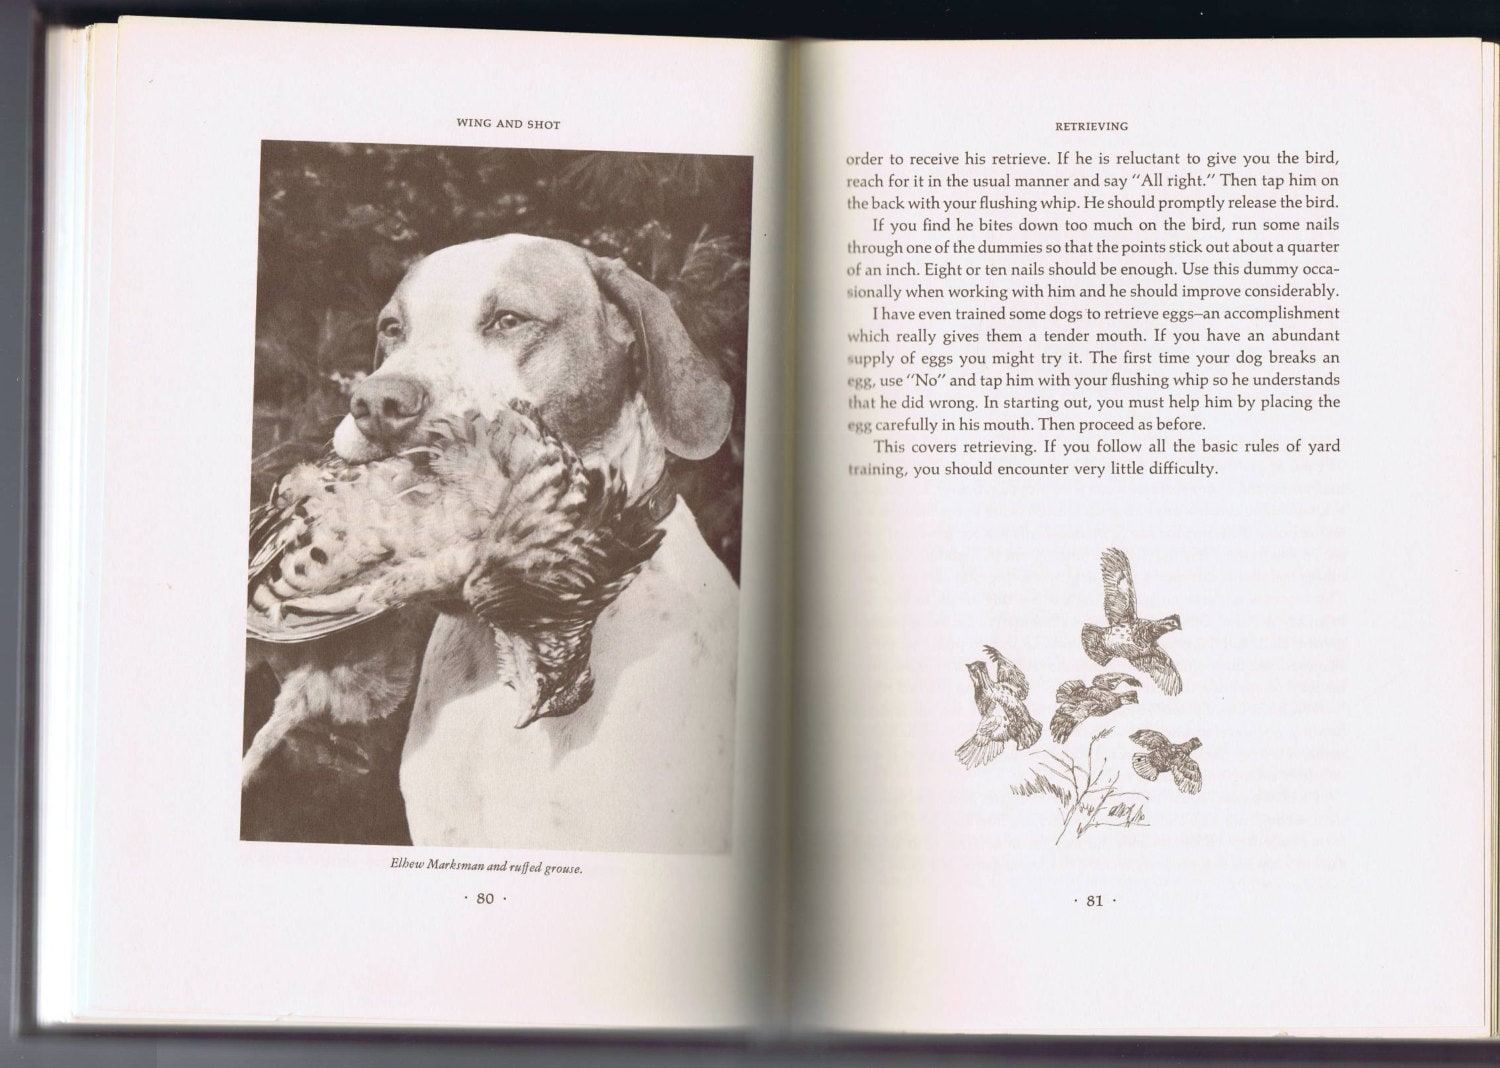 Wing and Shot Gun Dog Training Book by Robert Wehle Bxed Edition 4th Printing 1971